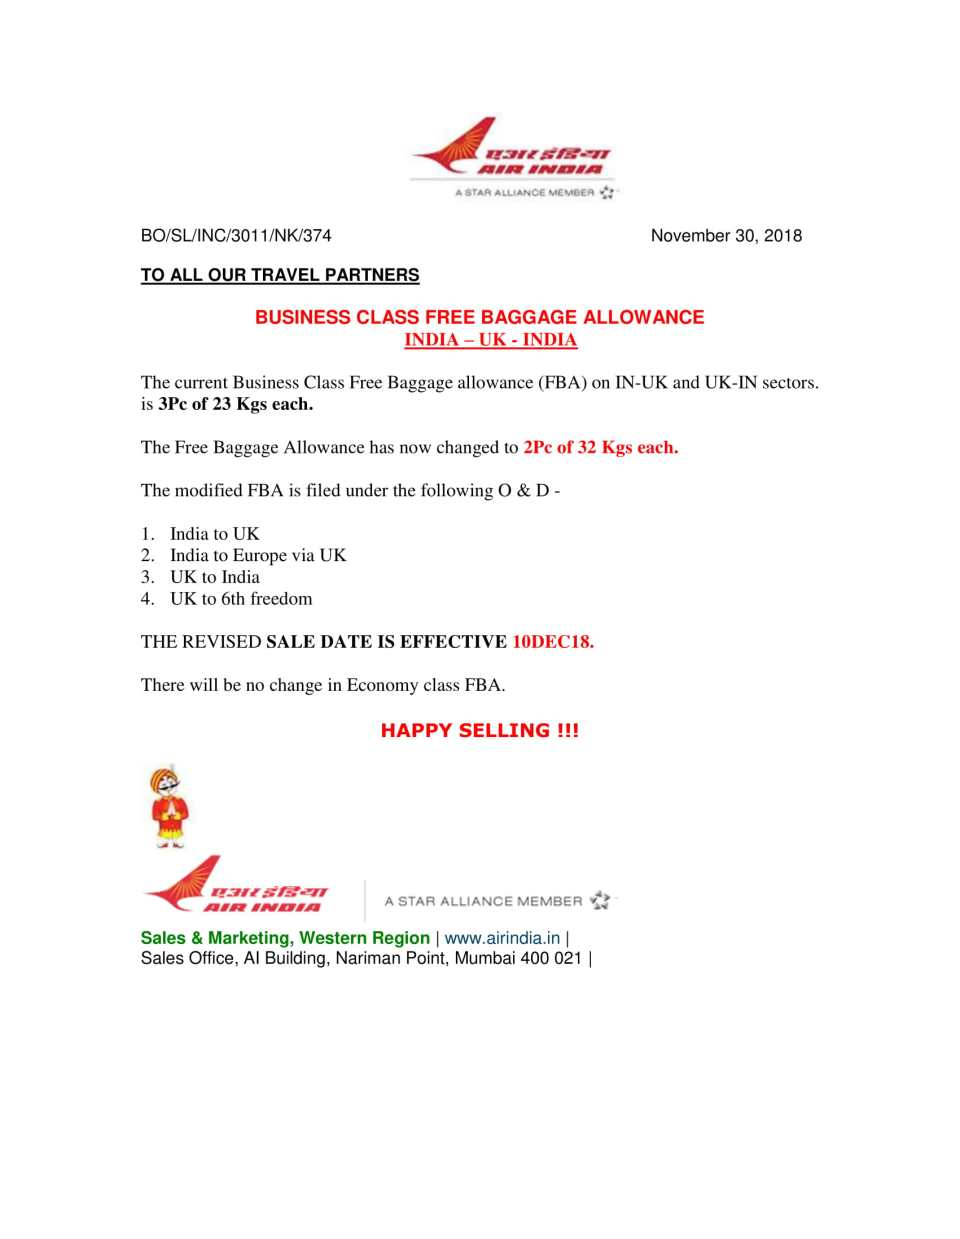 Business Class Free Baggage Allowance IND-UK-IND (Cir 374)-1